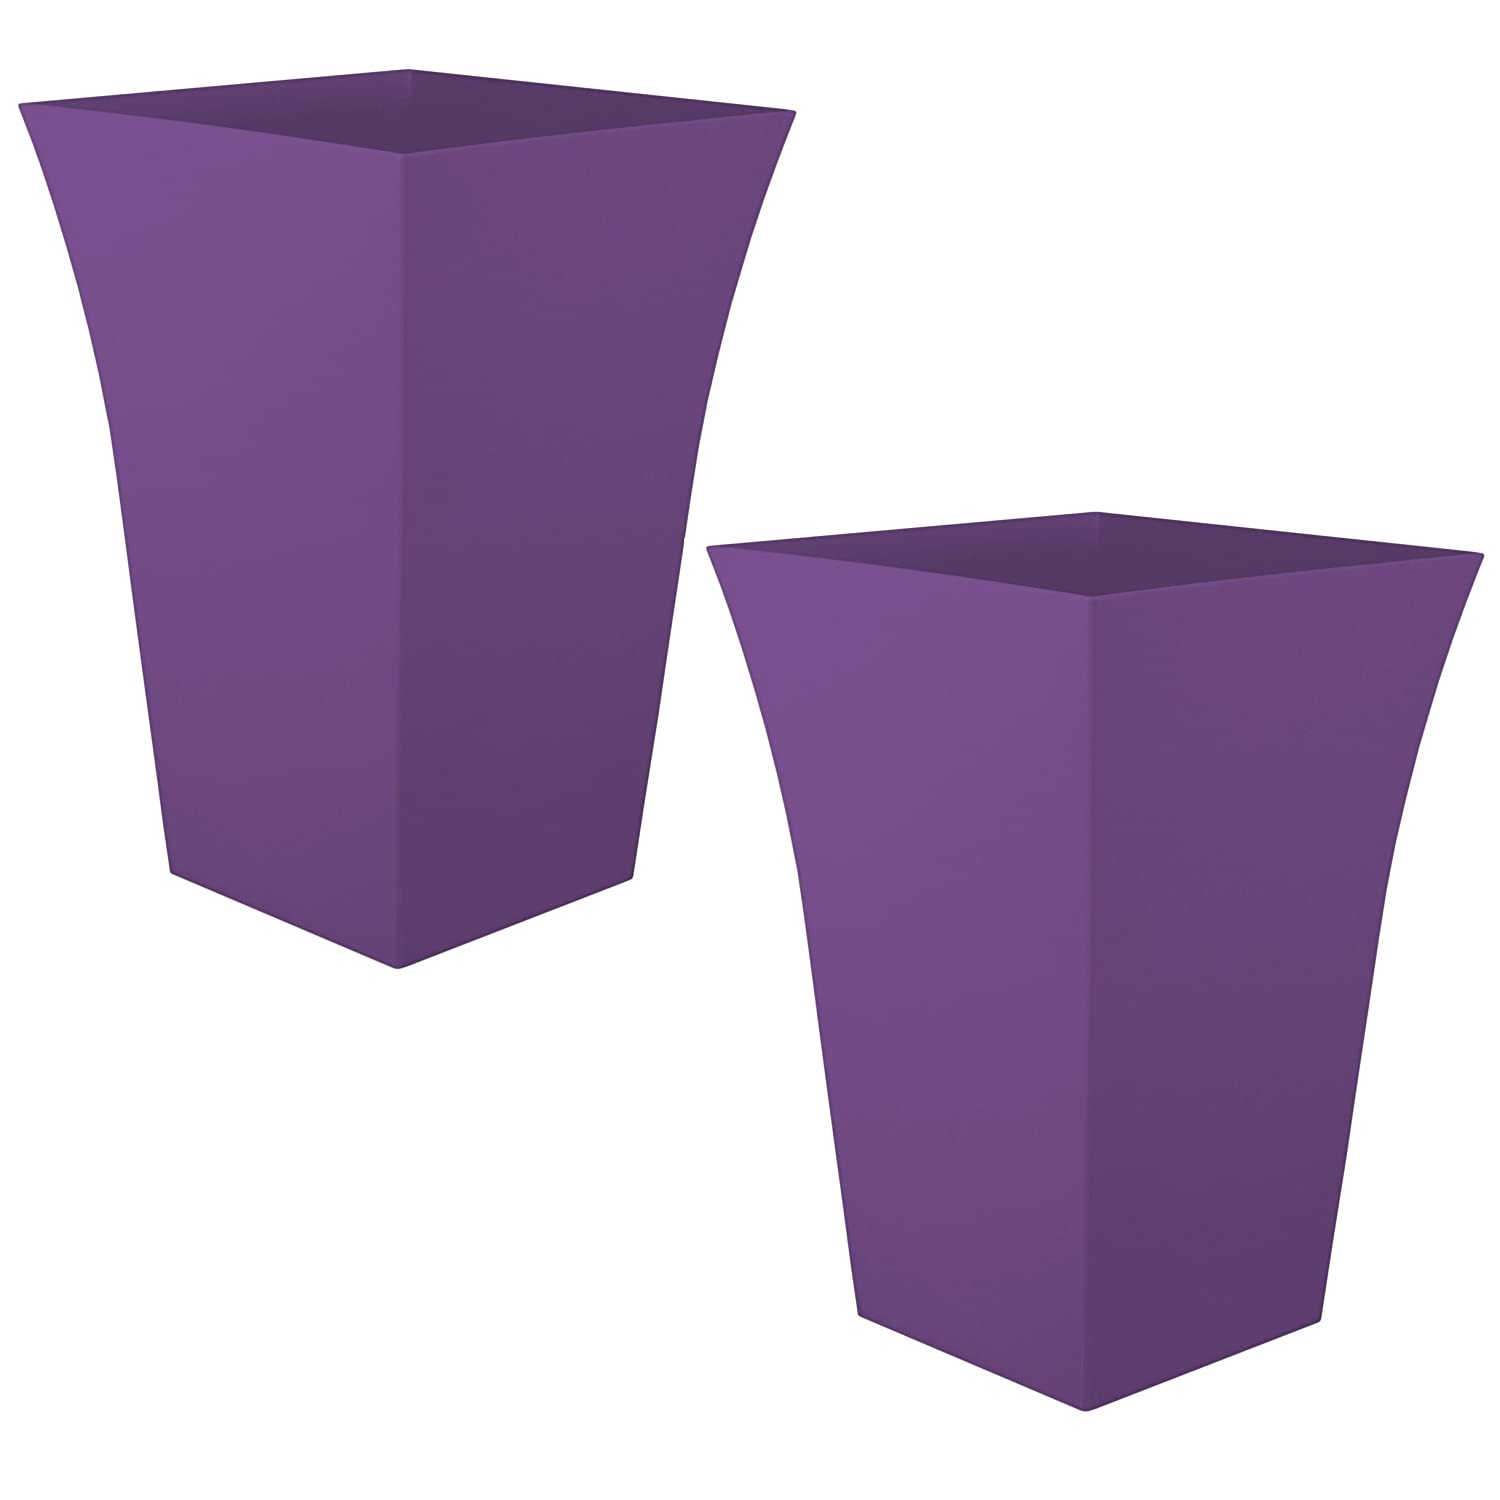 Charming 2 X CrazyGadget® Large Milano Tall Planter Square Plastic Garden Flower Plant  Pot Gloss Finish PURPLE: Amazon.co.uk: Garden U0026 Outdoors